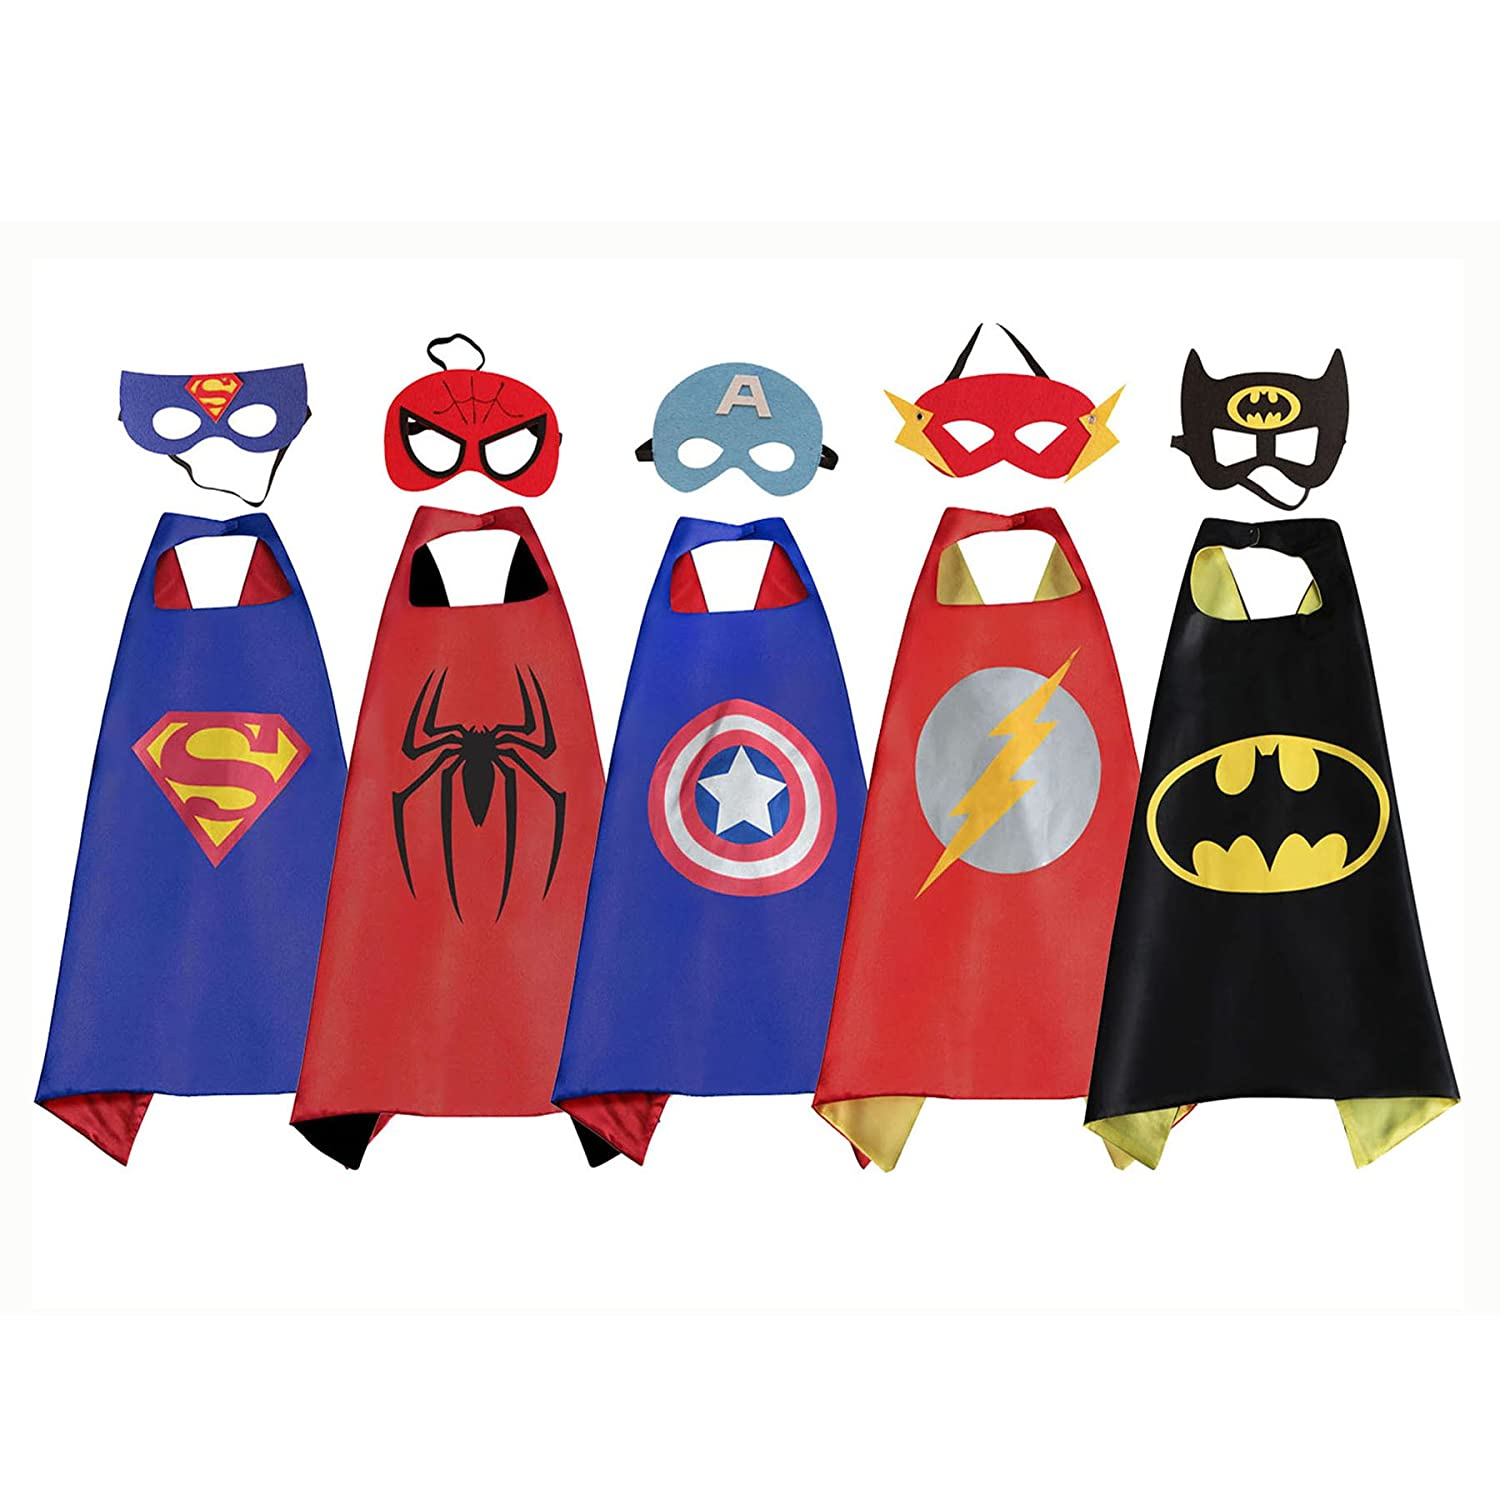 Dress up five nights at freedys - Riorand Comics Cartoon Heros Dress Up Costumes 5 Satin Capes With Felt Masks